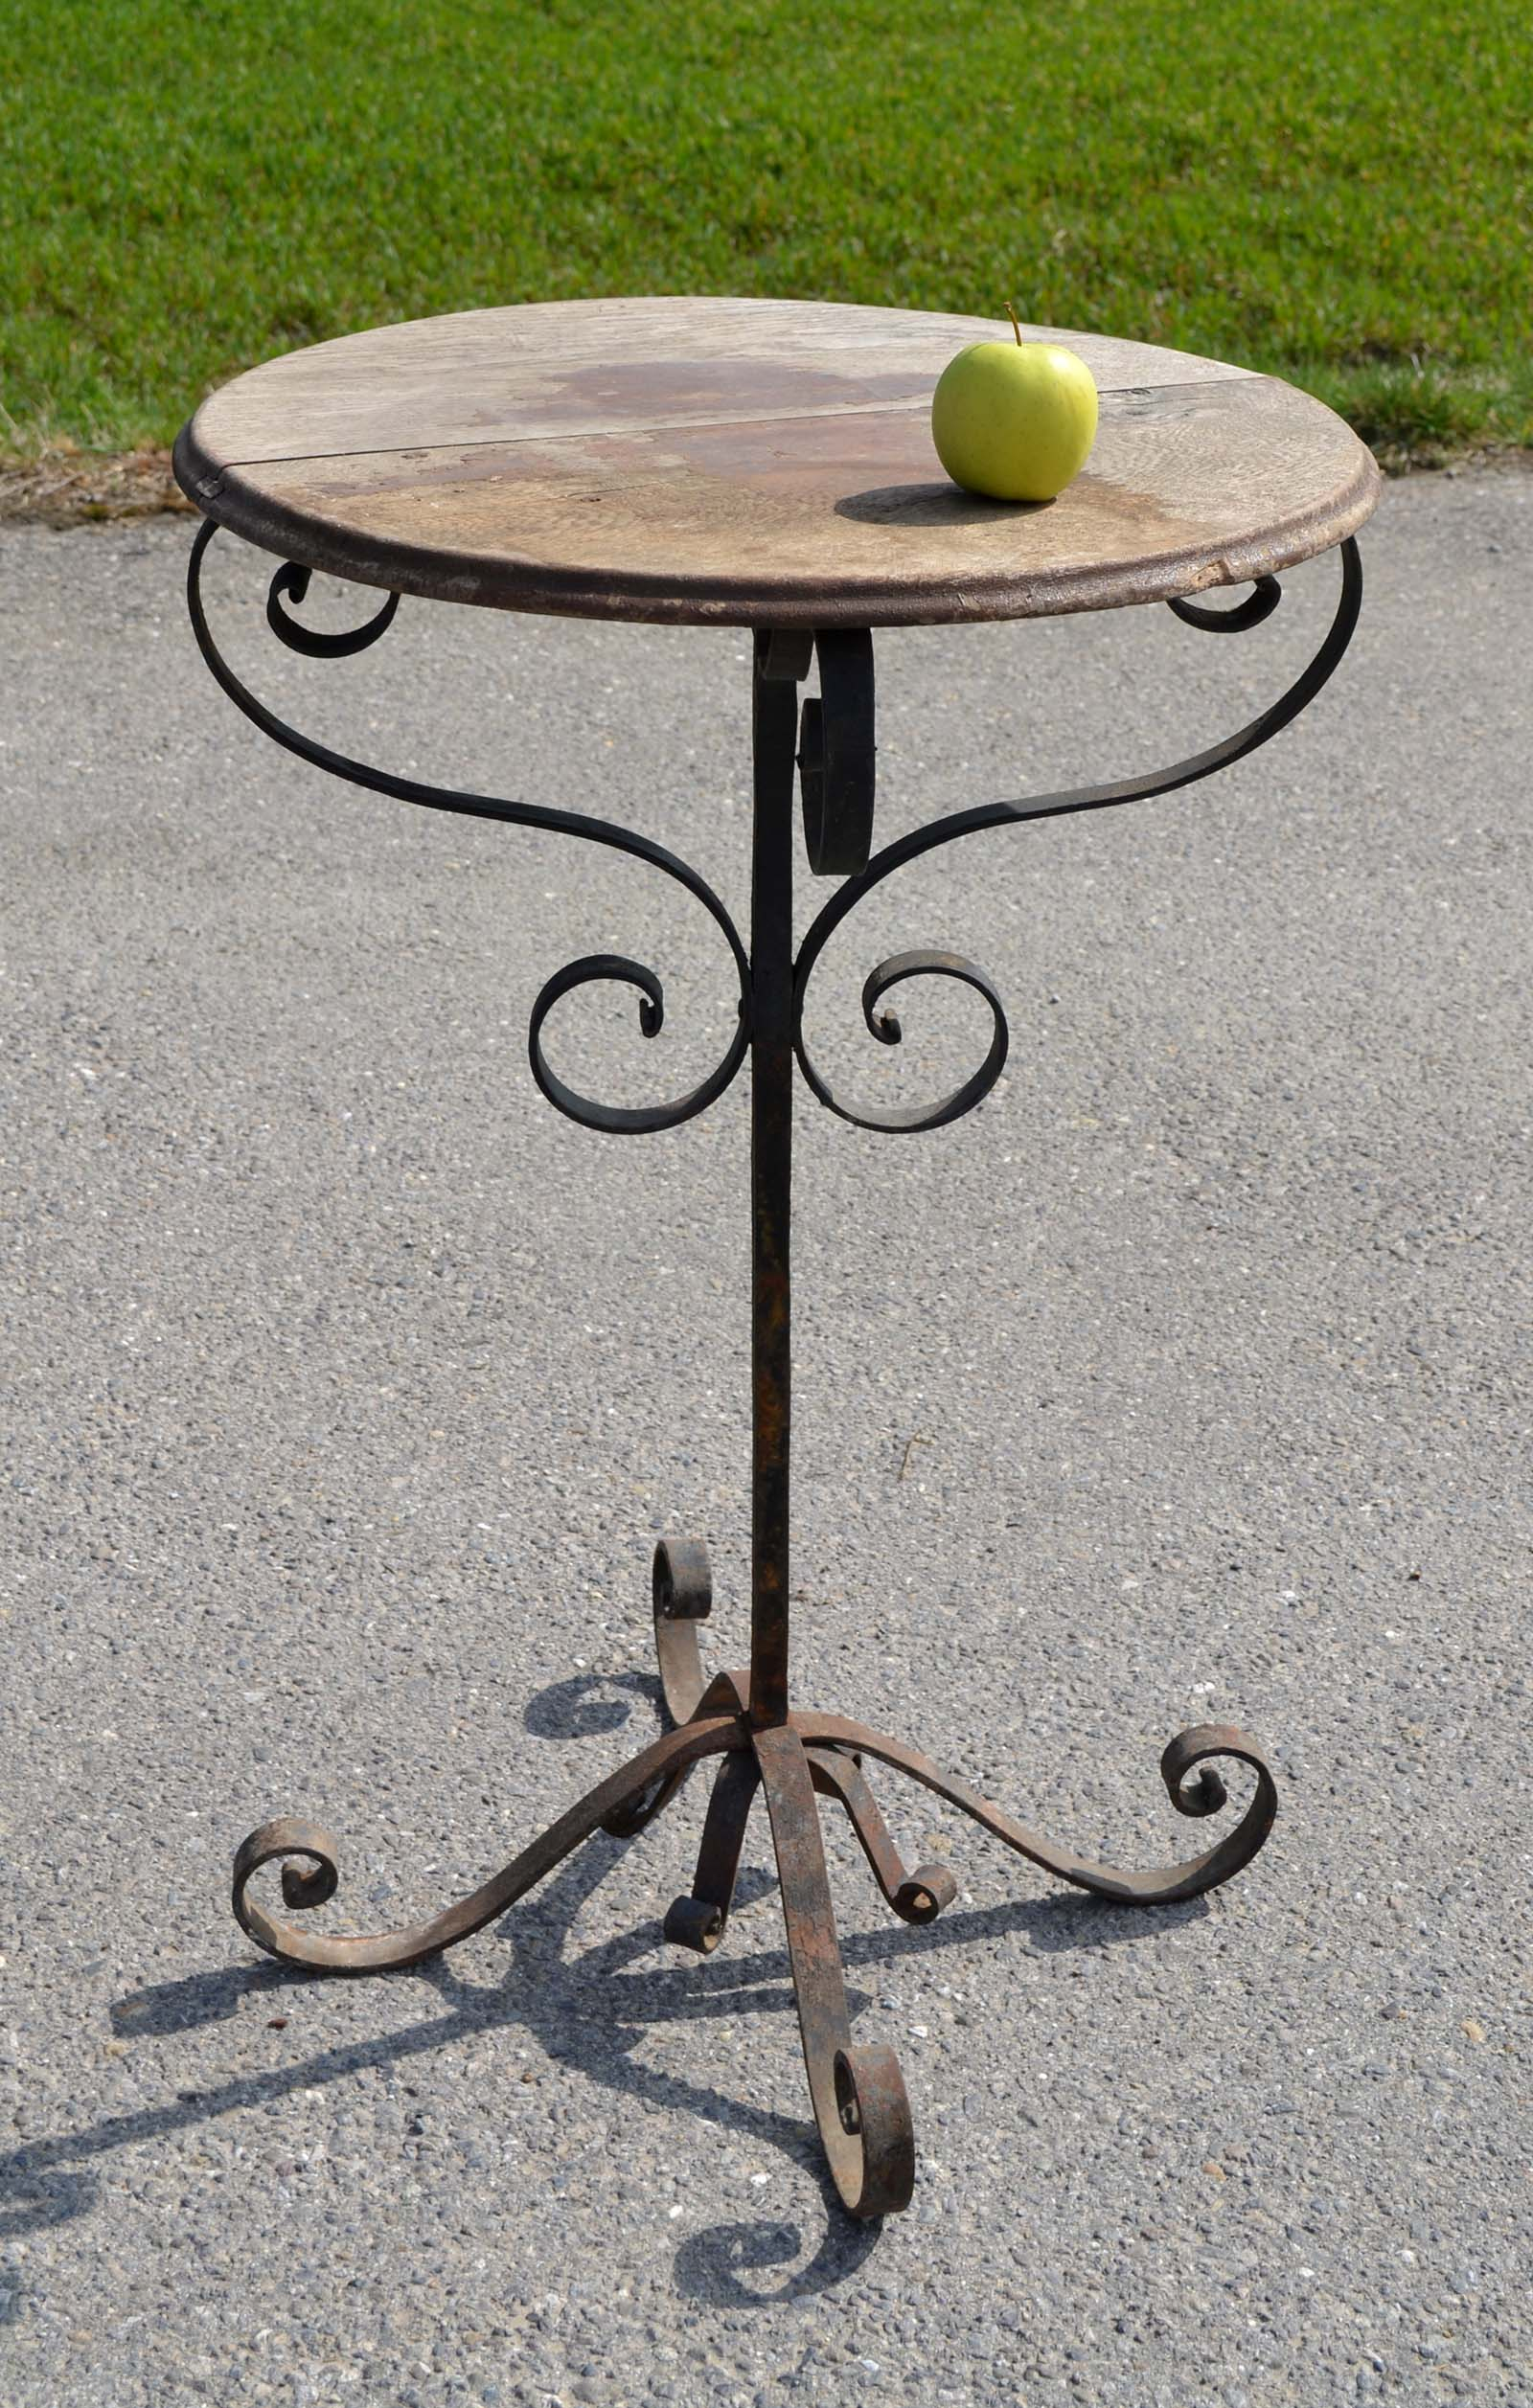 Table fer forge plateau bois maison design for Table salle manger fer forge plateau bois